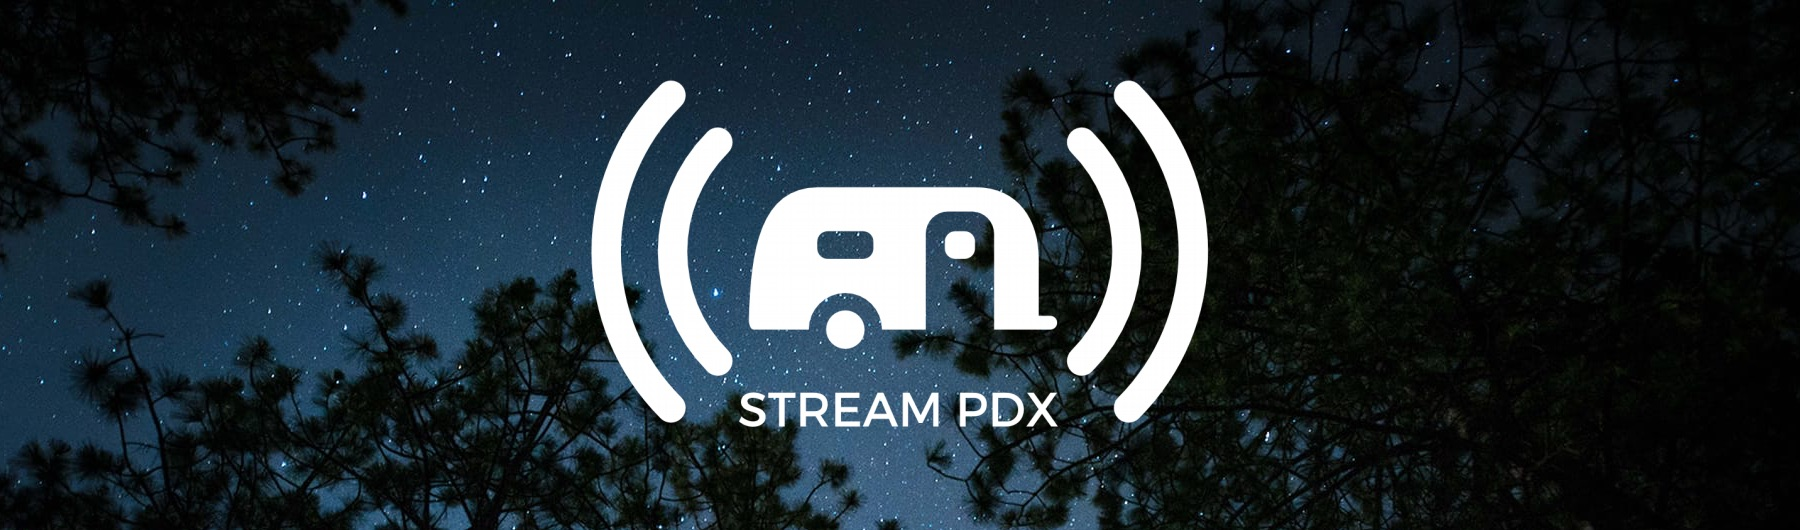 Monthly Stream PDX Meetup